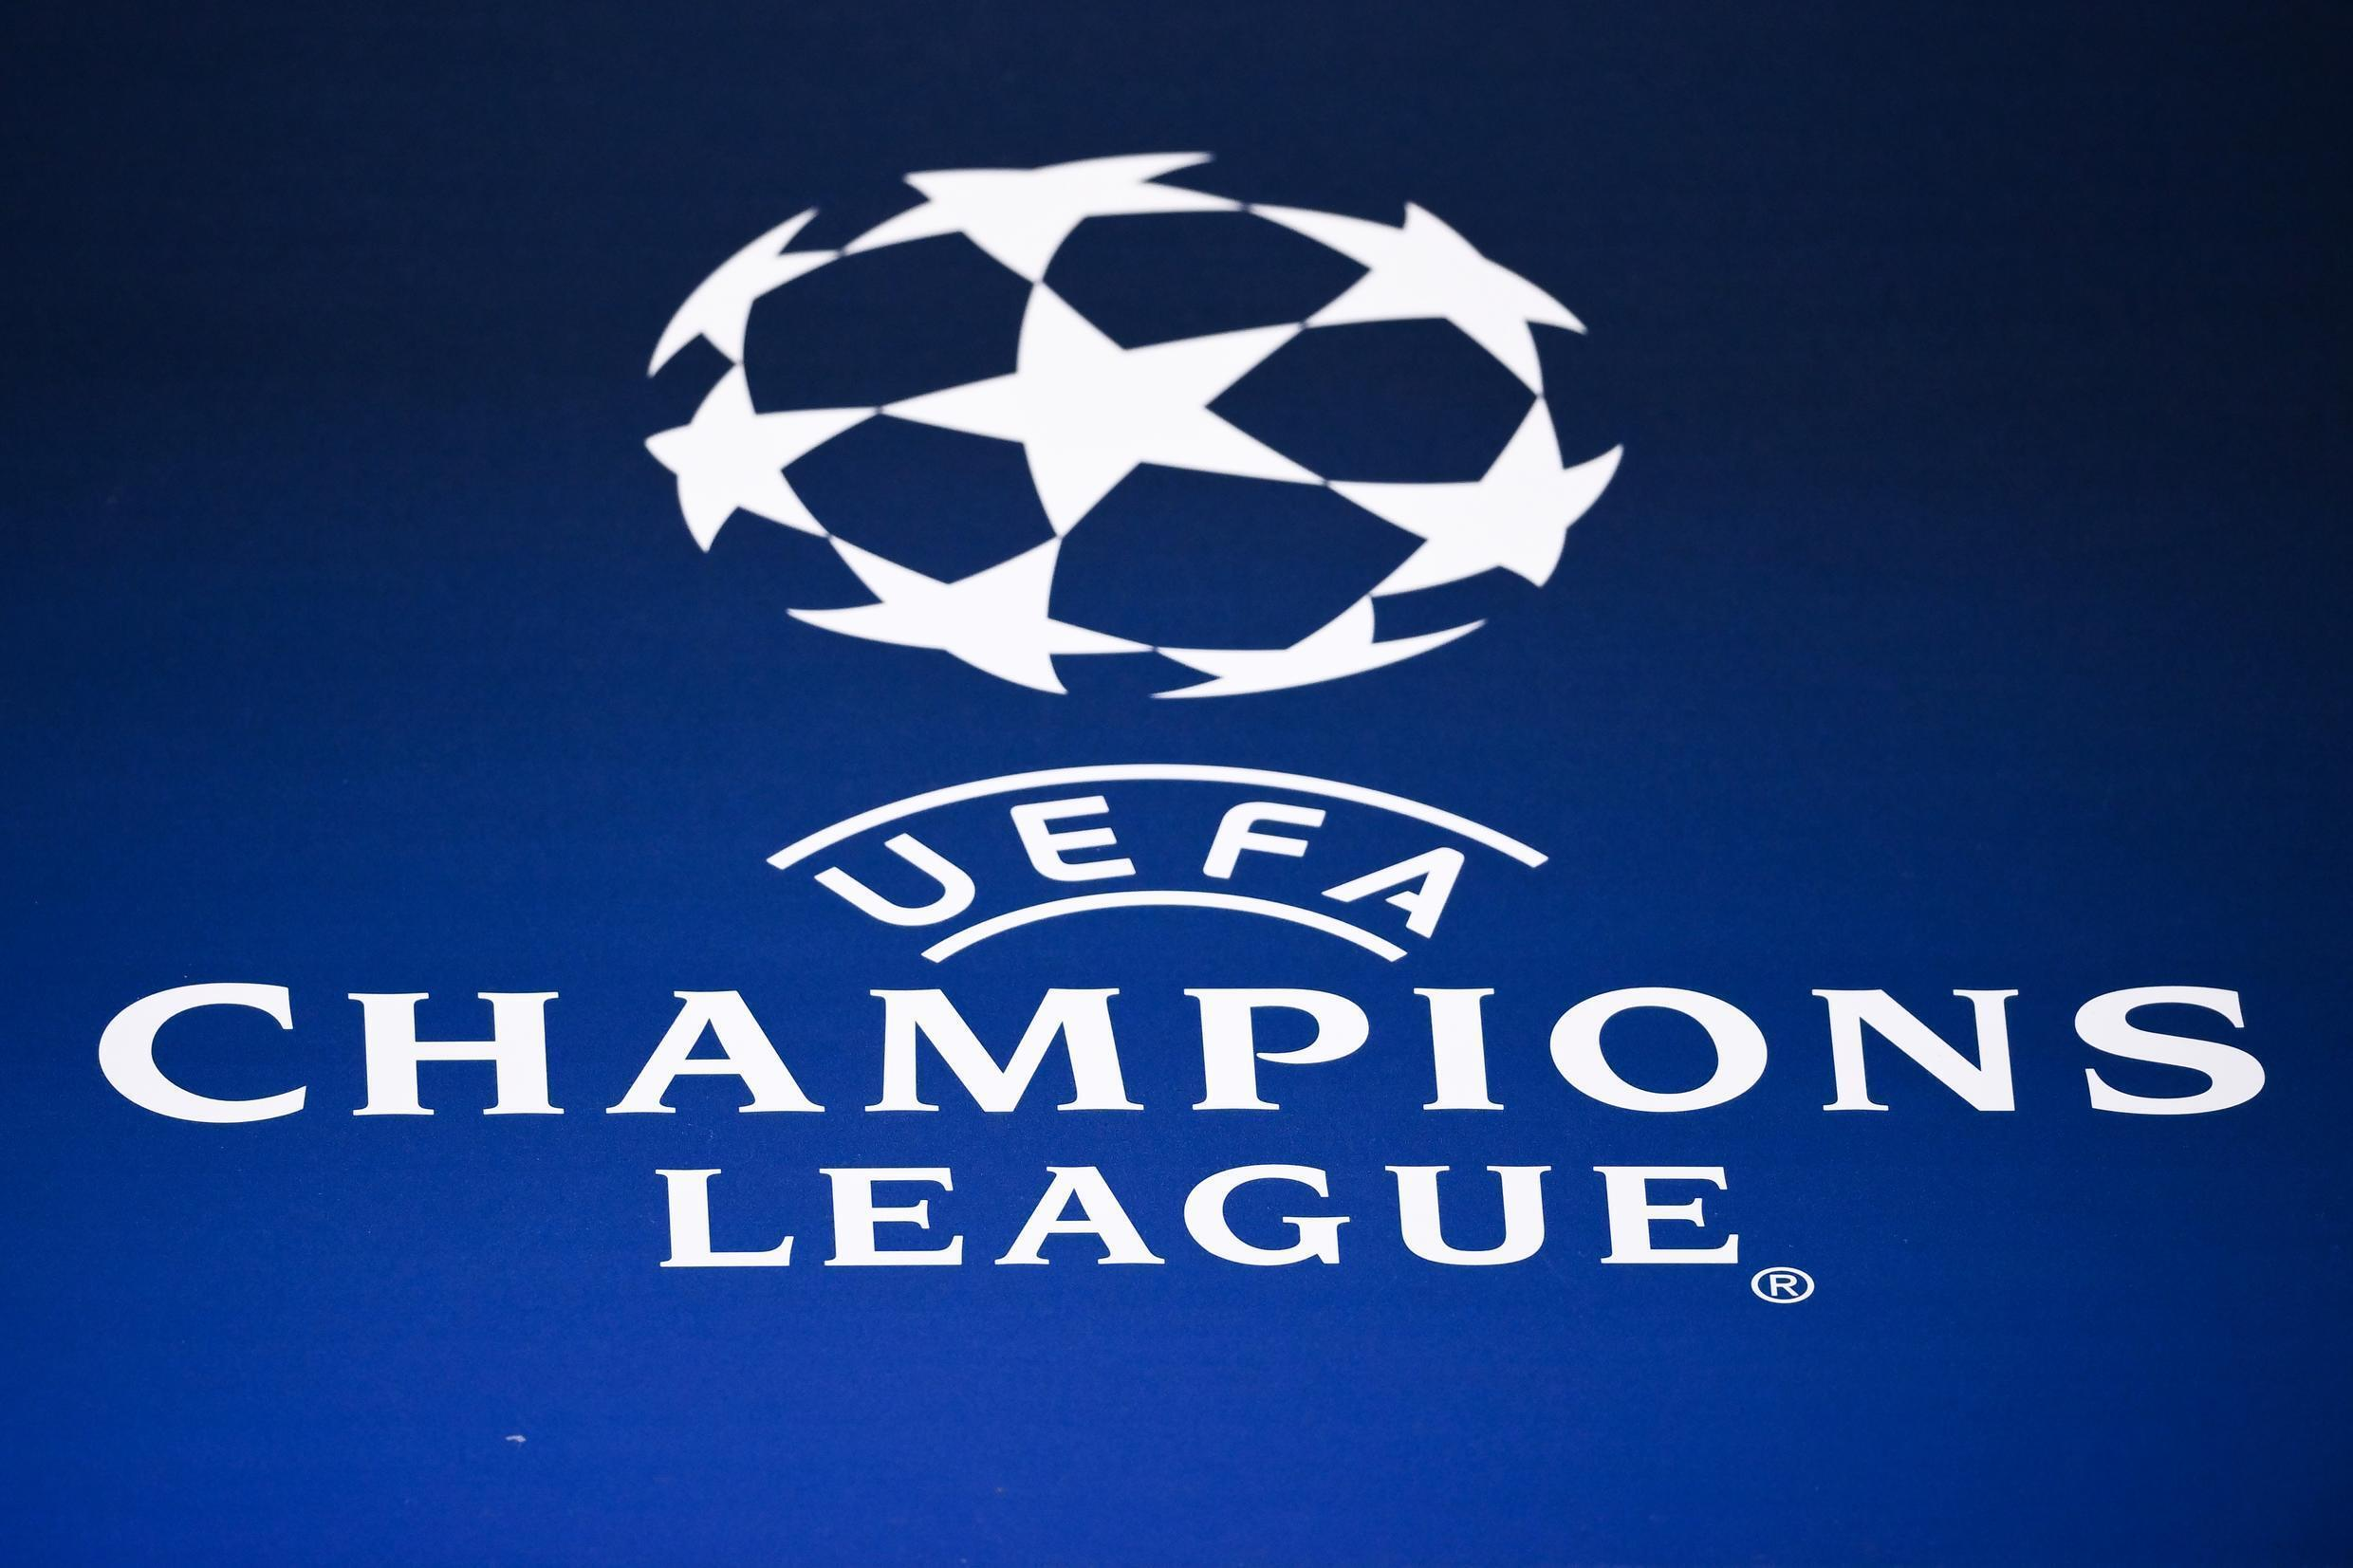 Istanbul is due to stage the Champions League final